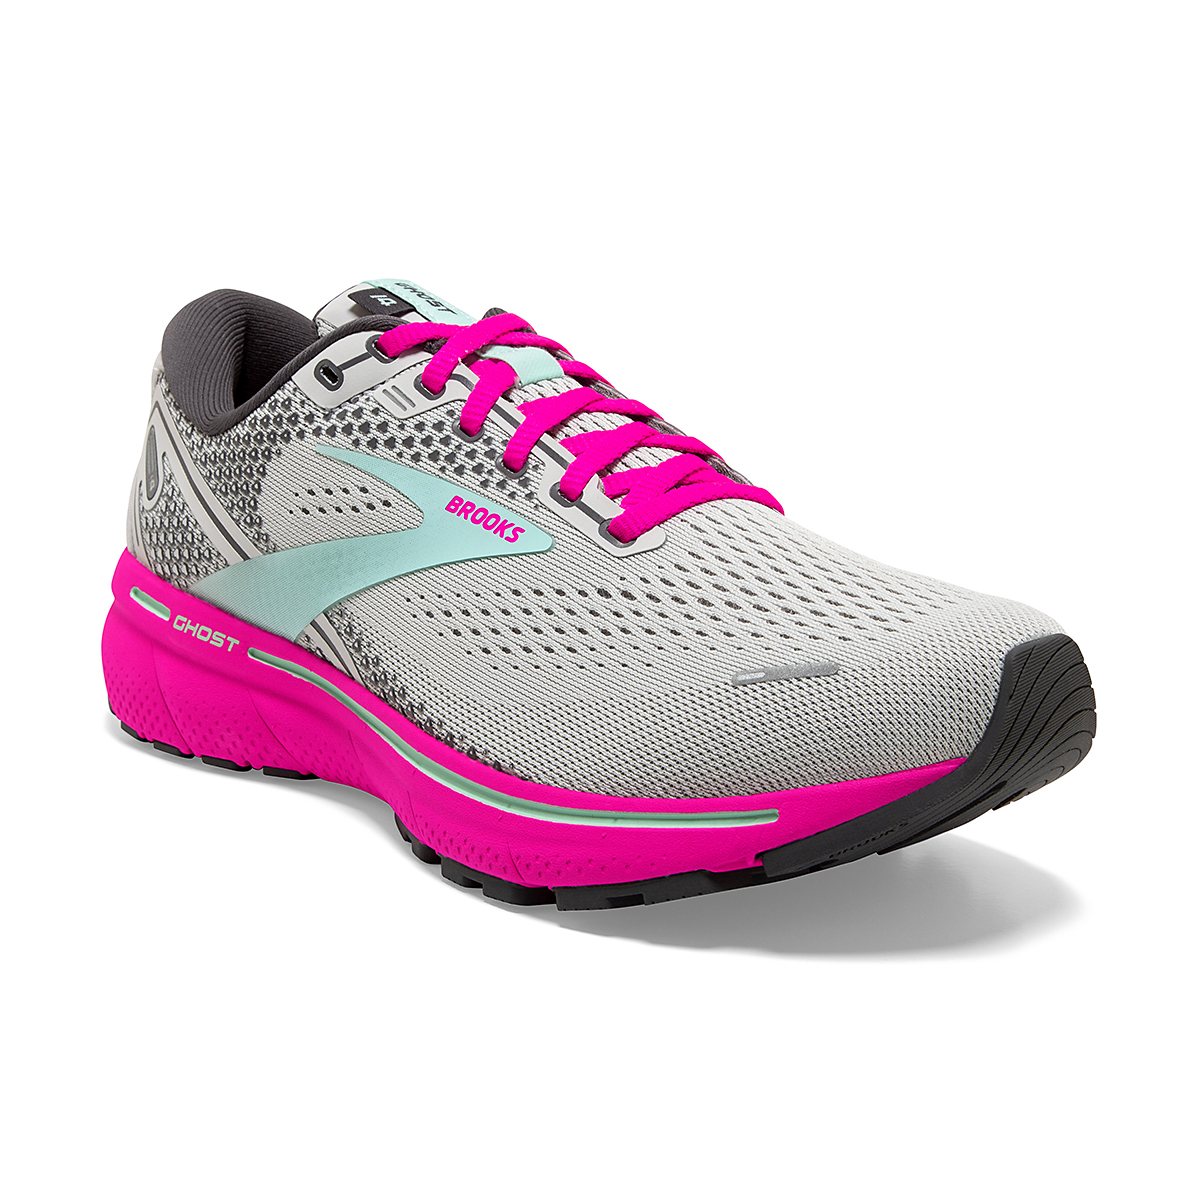 Women's Brooks Ghost 14 Running Shoe - Color: Oyster/Yucca/Pink - Size: 5 - Width: Regular, Oyster/Yucca/Pink, large, image 2